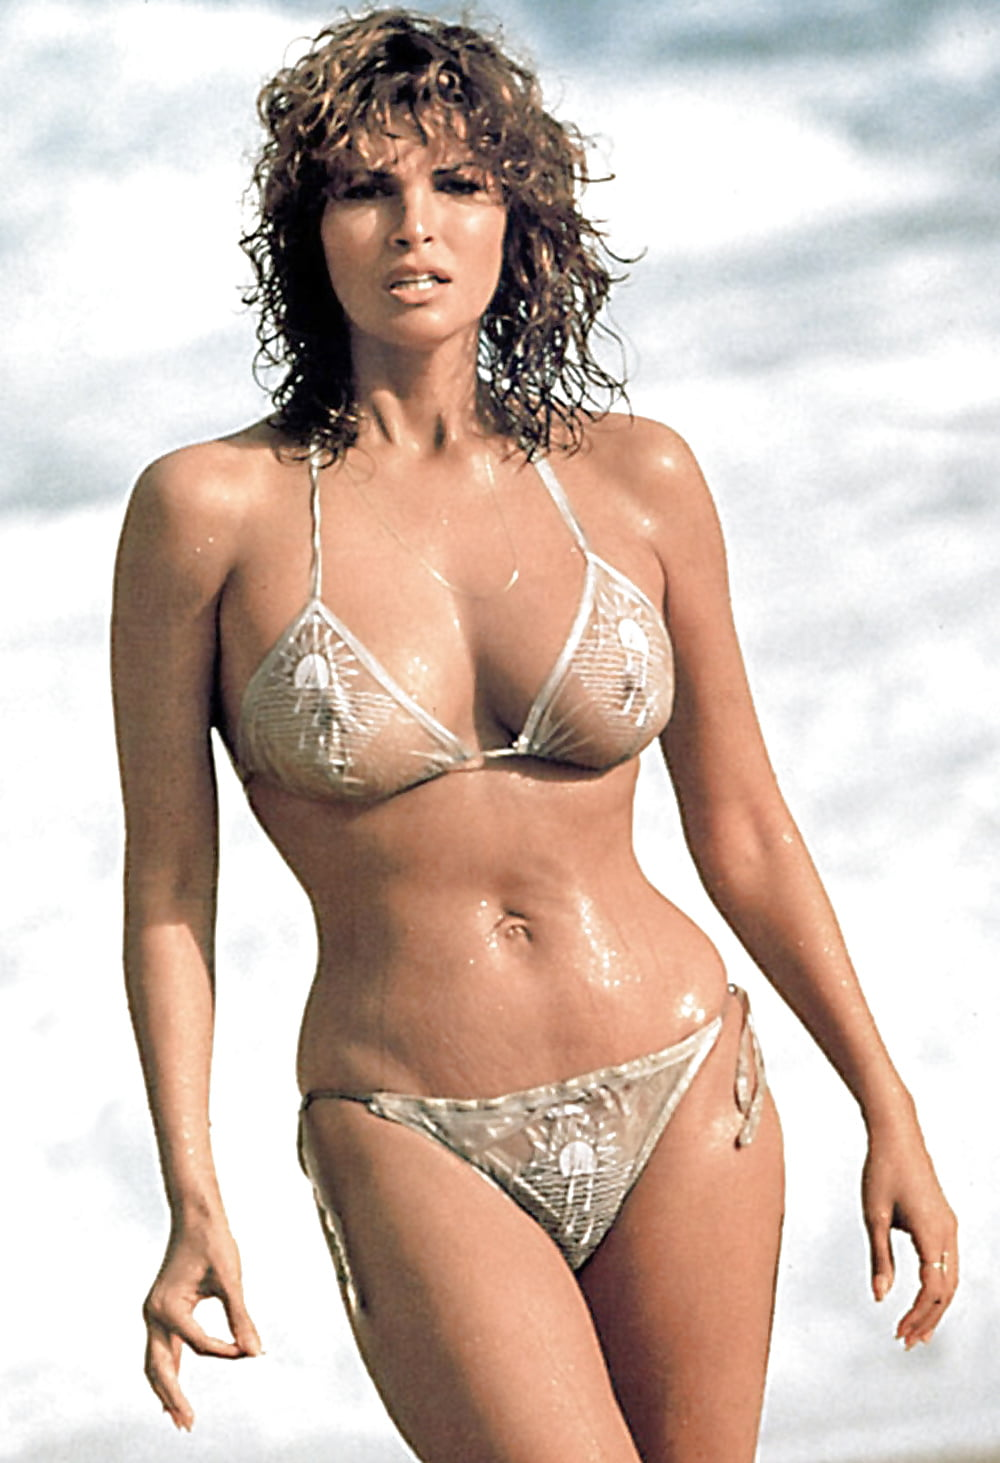 Tits Raquel Welch nudes (68 foto and video), Ass, Sideboobs, Boobs, see through 2006